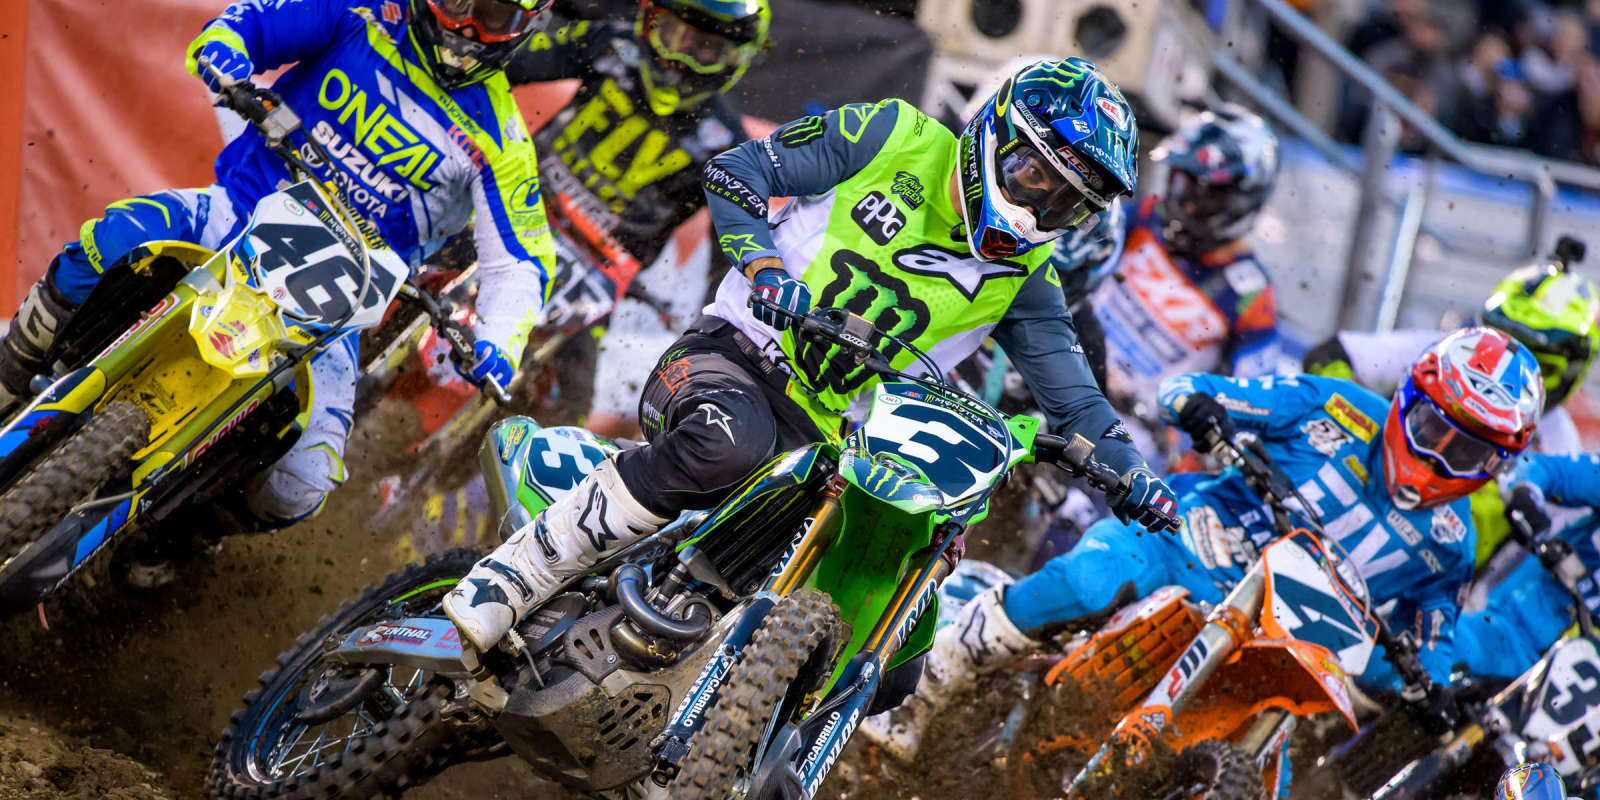 Images from the Supercross event in East Rutherford, NJ